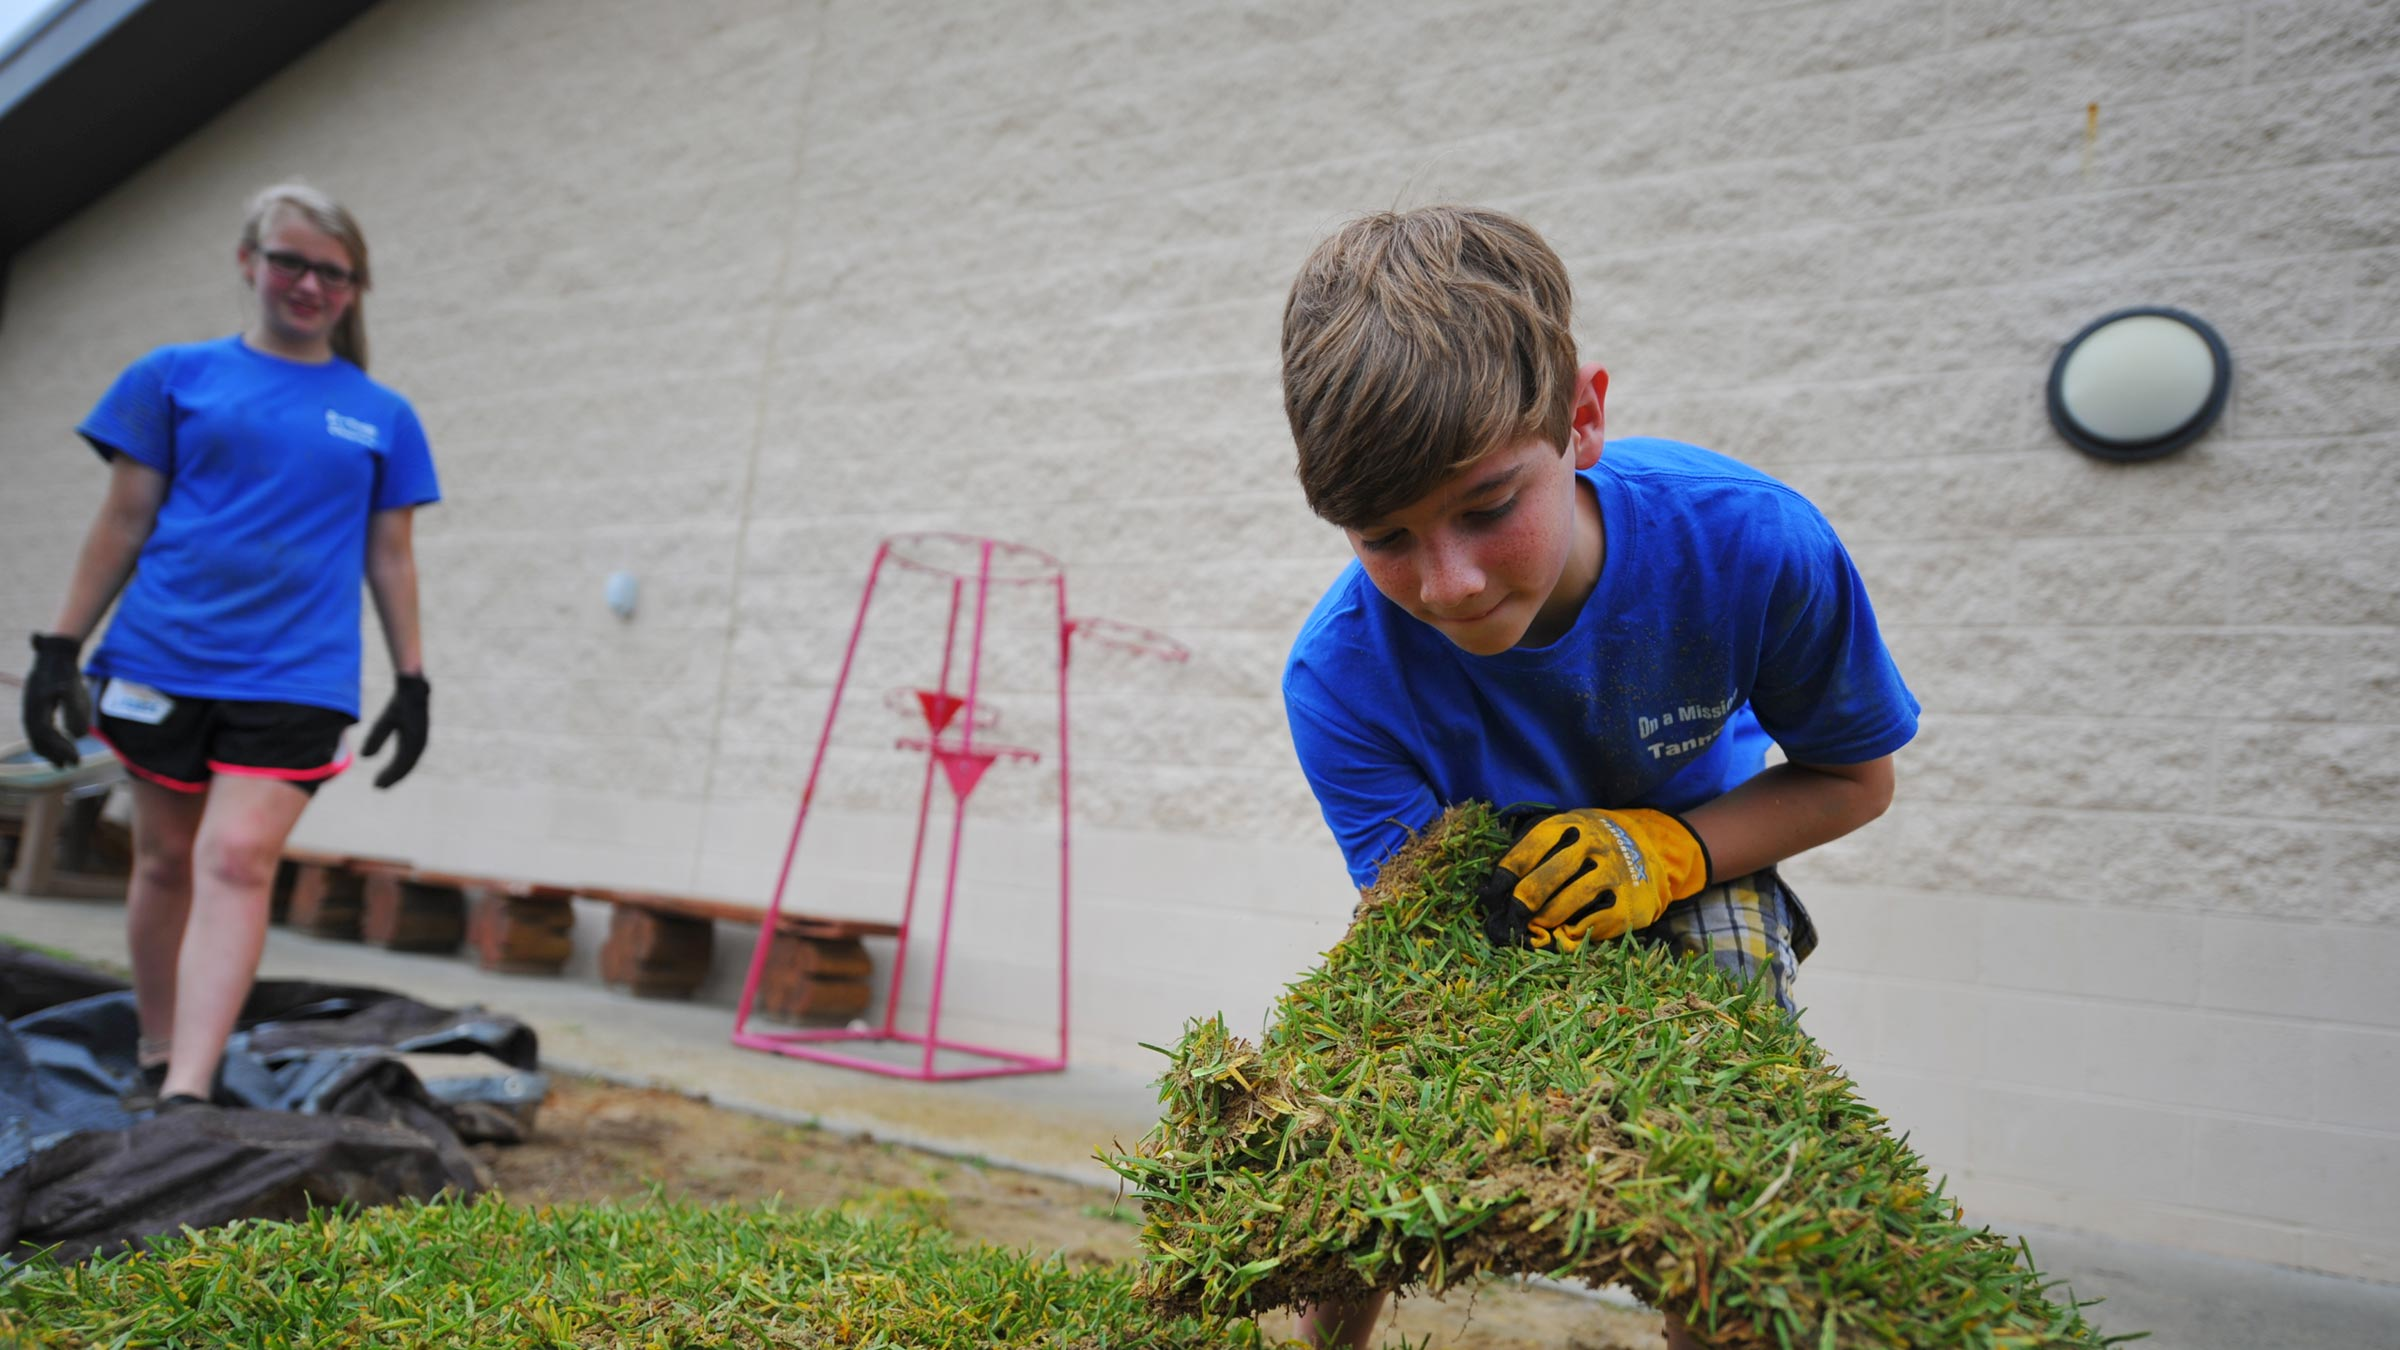 Two youths work laying sod